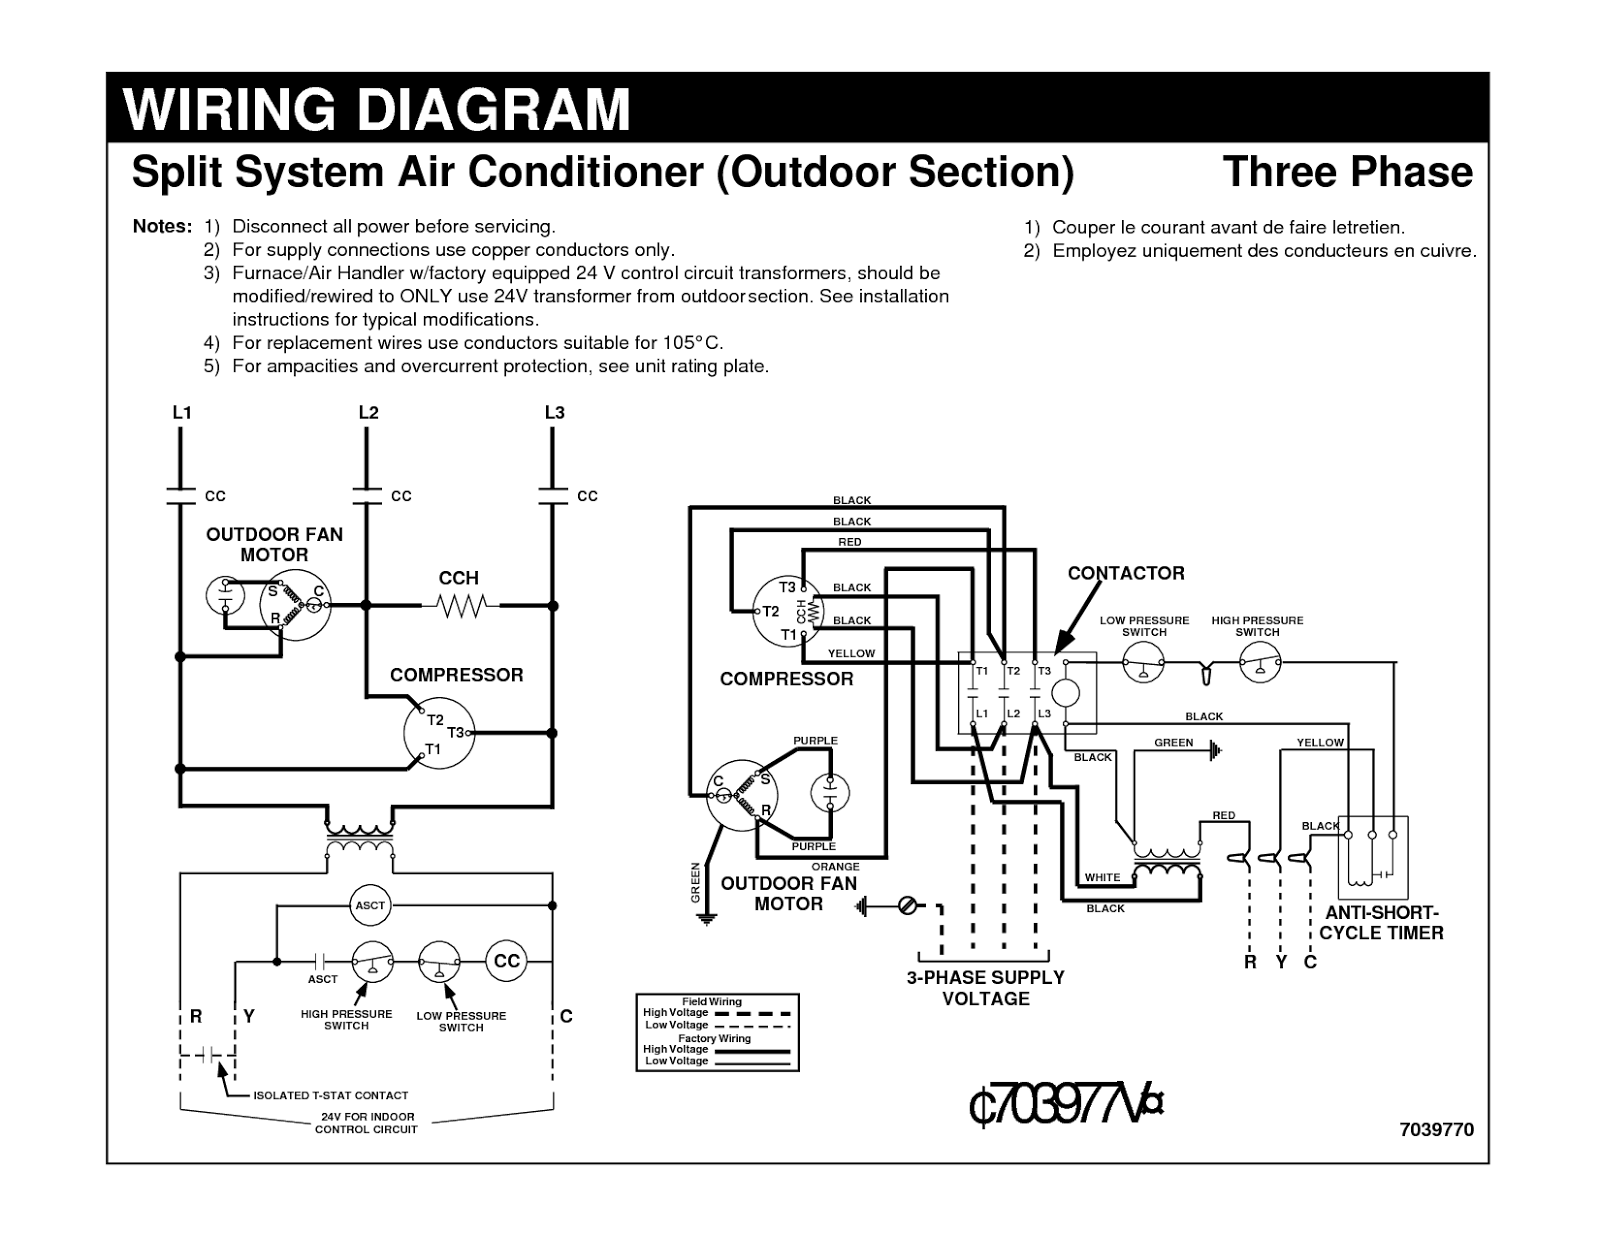 Ladder Wiring Diagram Software - Electrical Work Wiring Diagram •